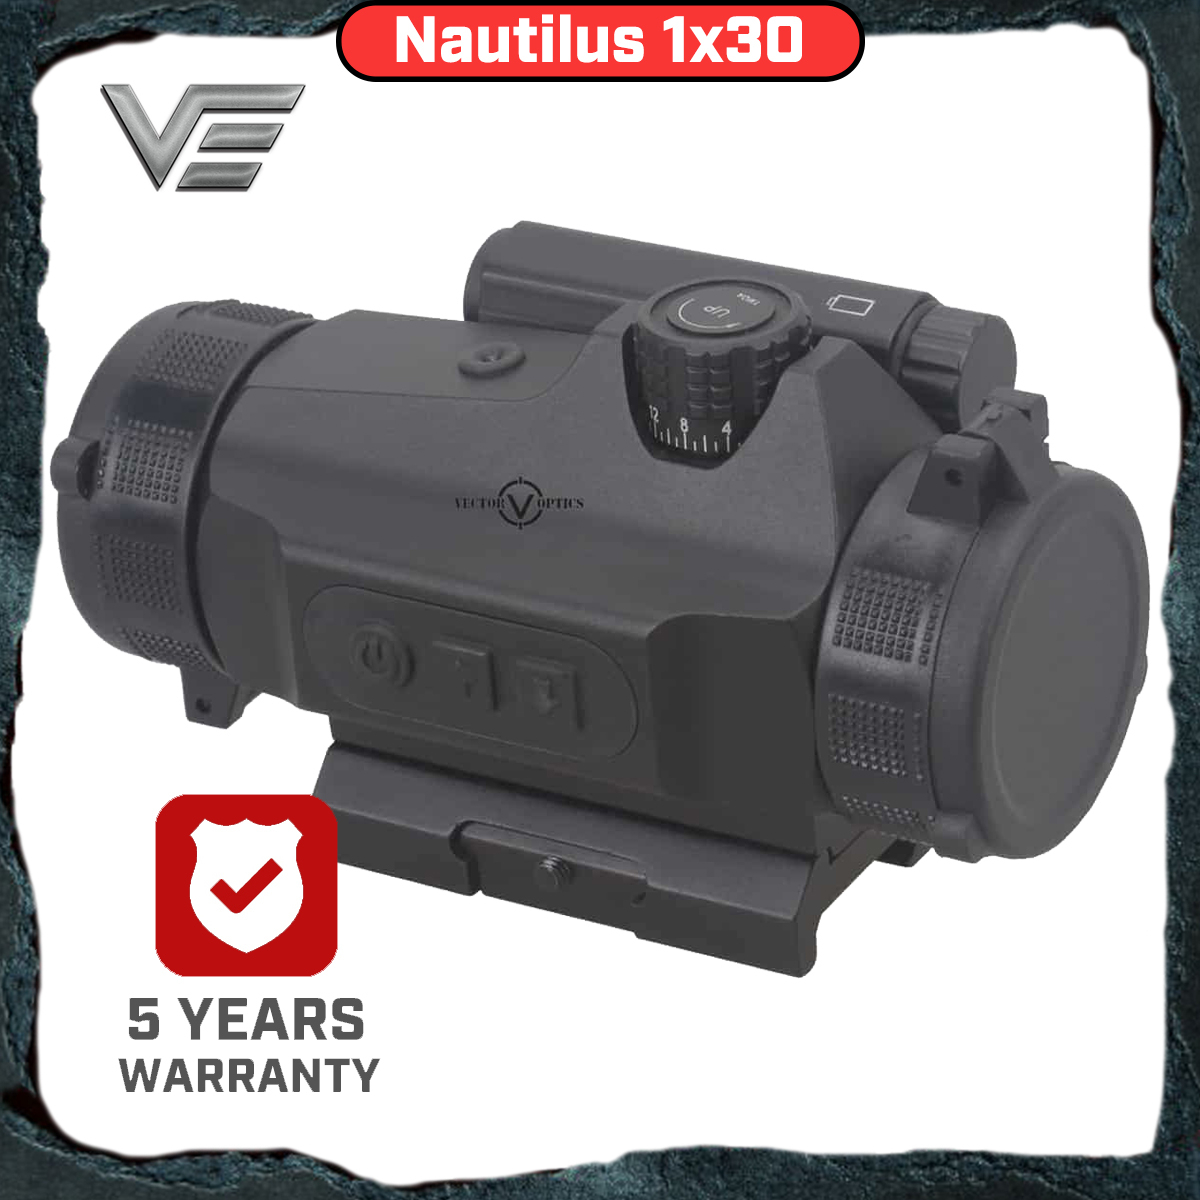 Vector Optics Nautilus Nautilus 1x30 Hunting Scopes Red Dot In Riflescopes Reflex Sight Auto Light Sense 110mm Weapon Sight